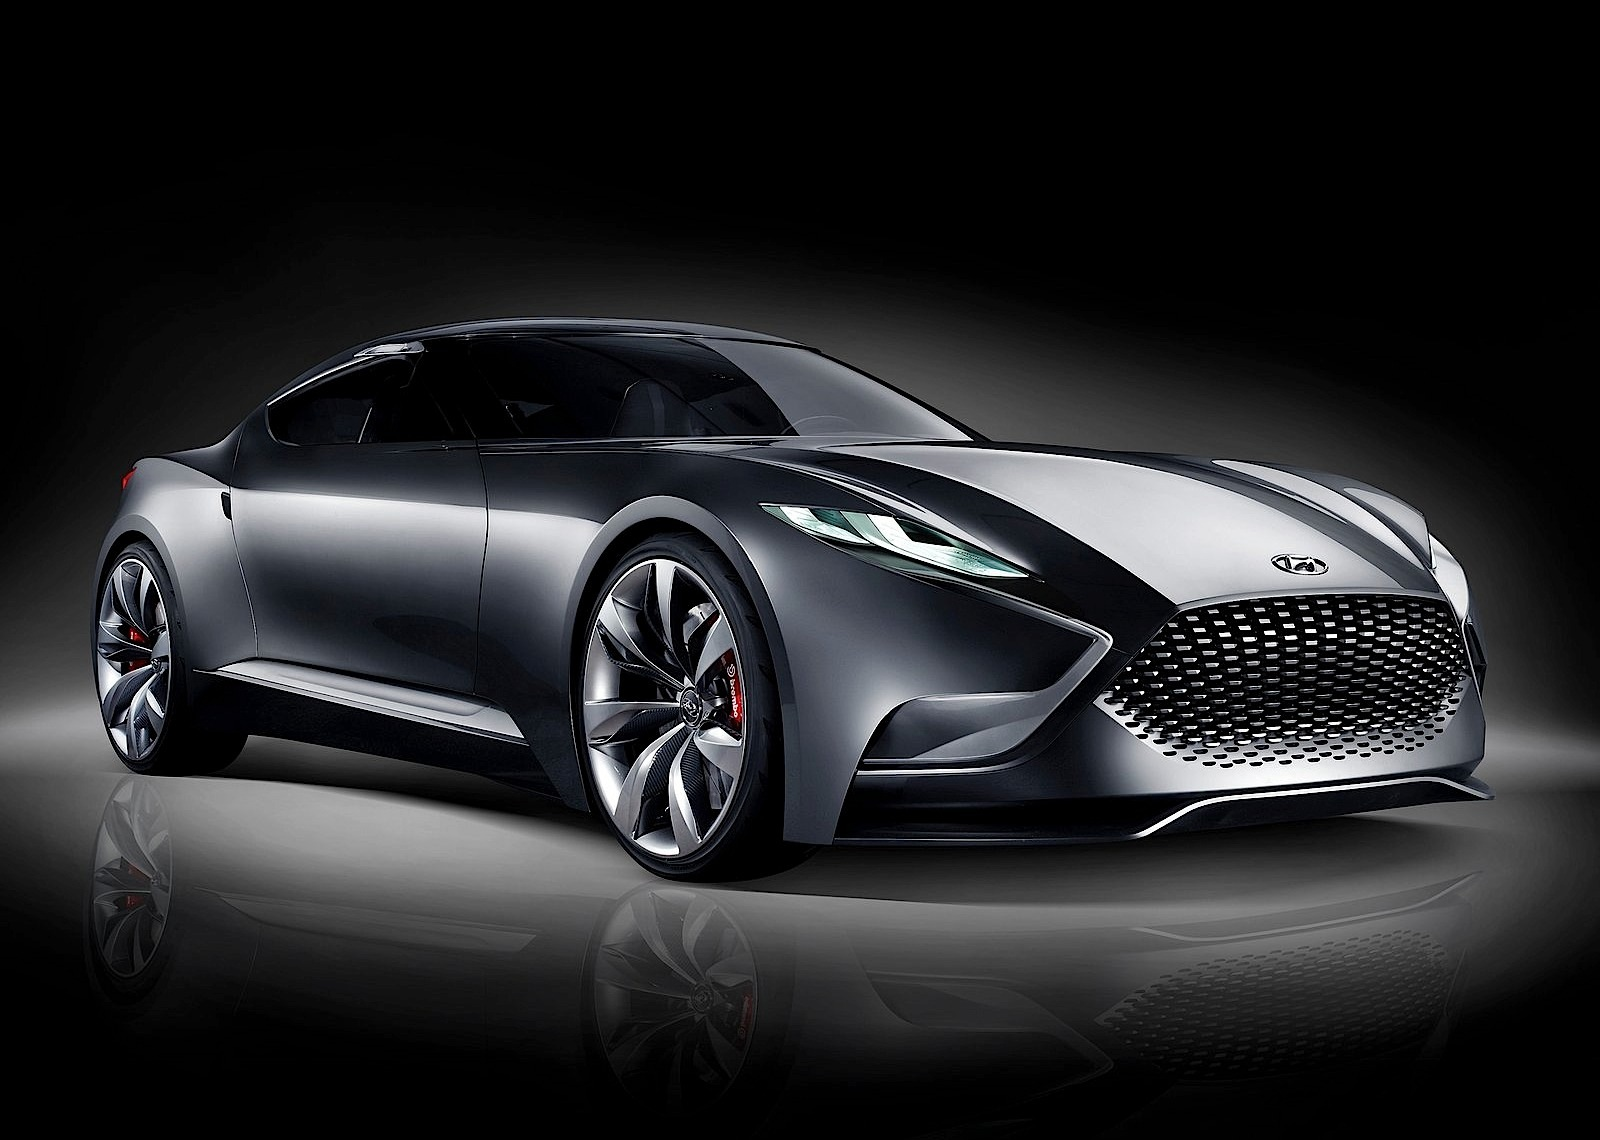 Hyundai Promo Video Shows Mysterious Coupe, Could Be a New Genesis